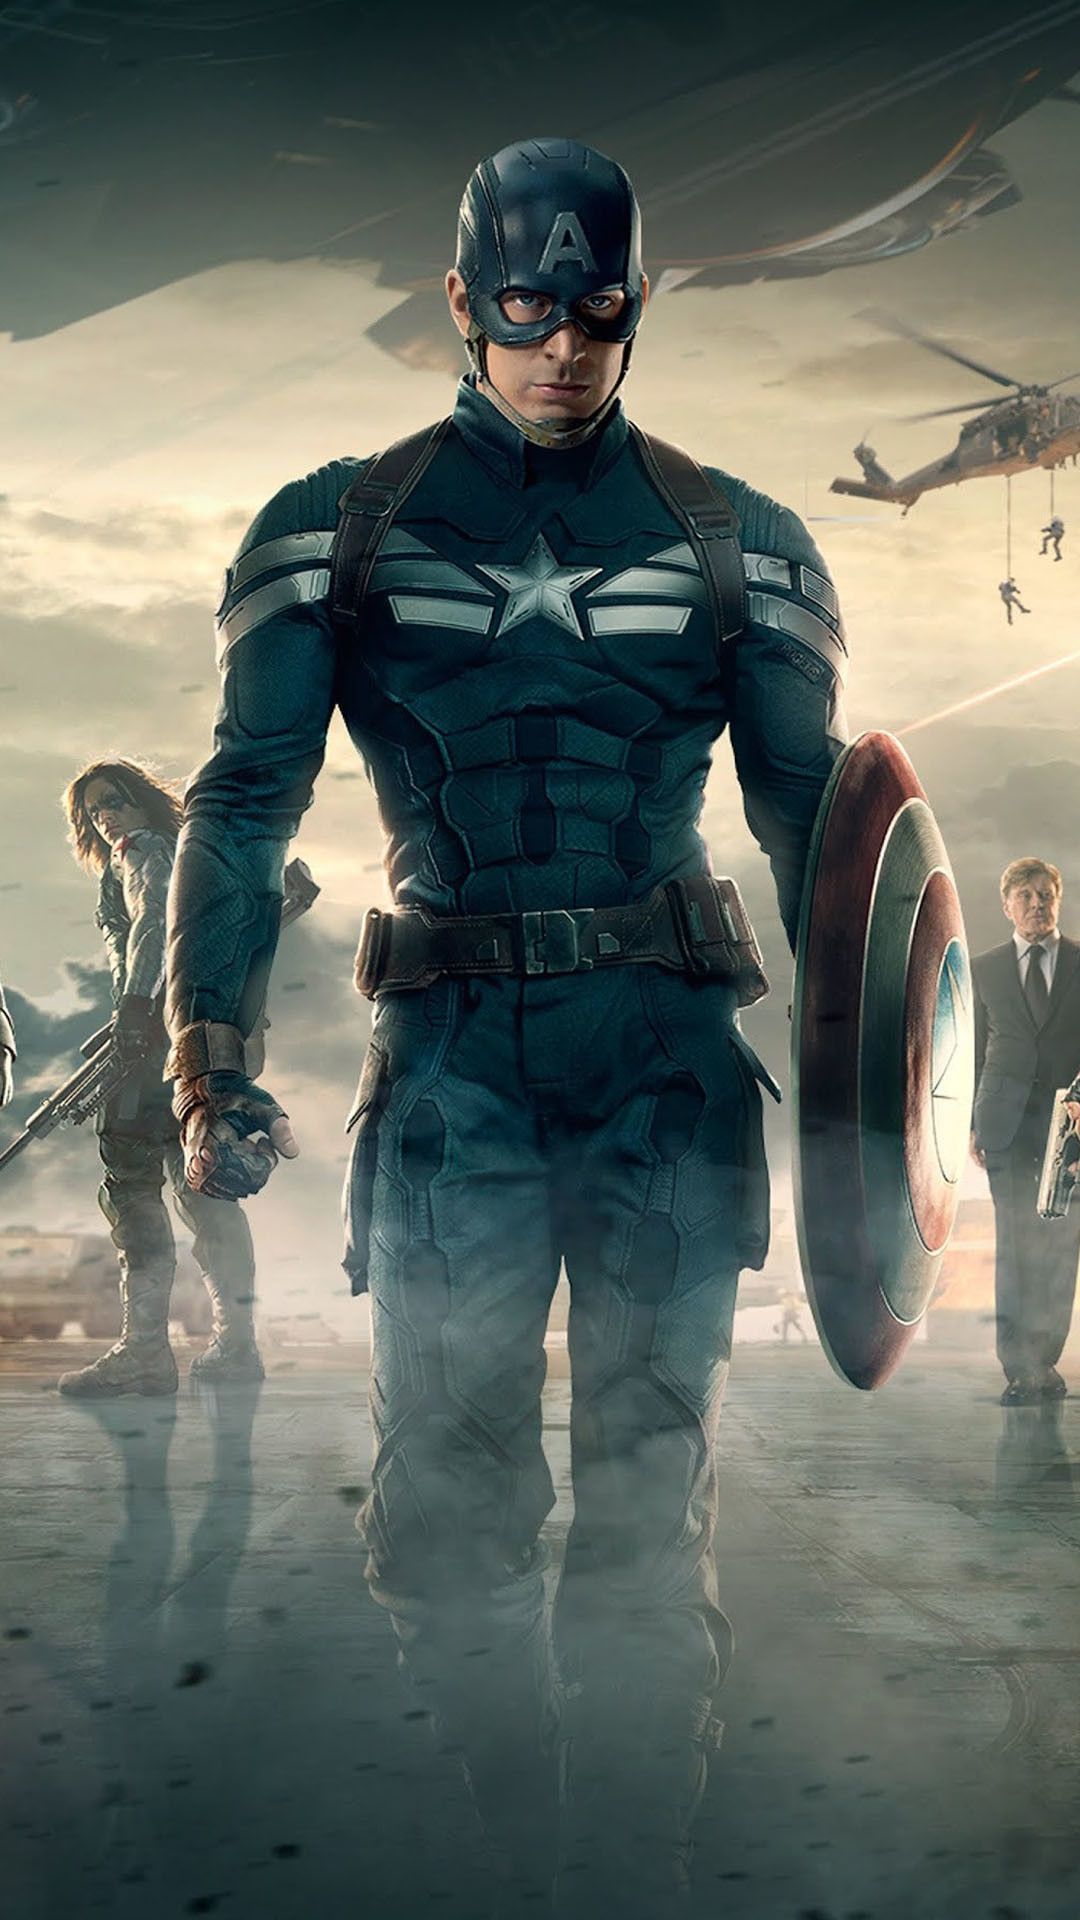 3500x1466 Captain America The Winter Soldier Wallpaper Hd Pack King London 2017 03 24